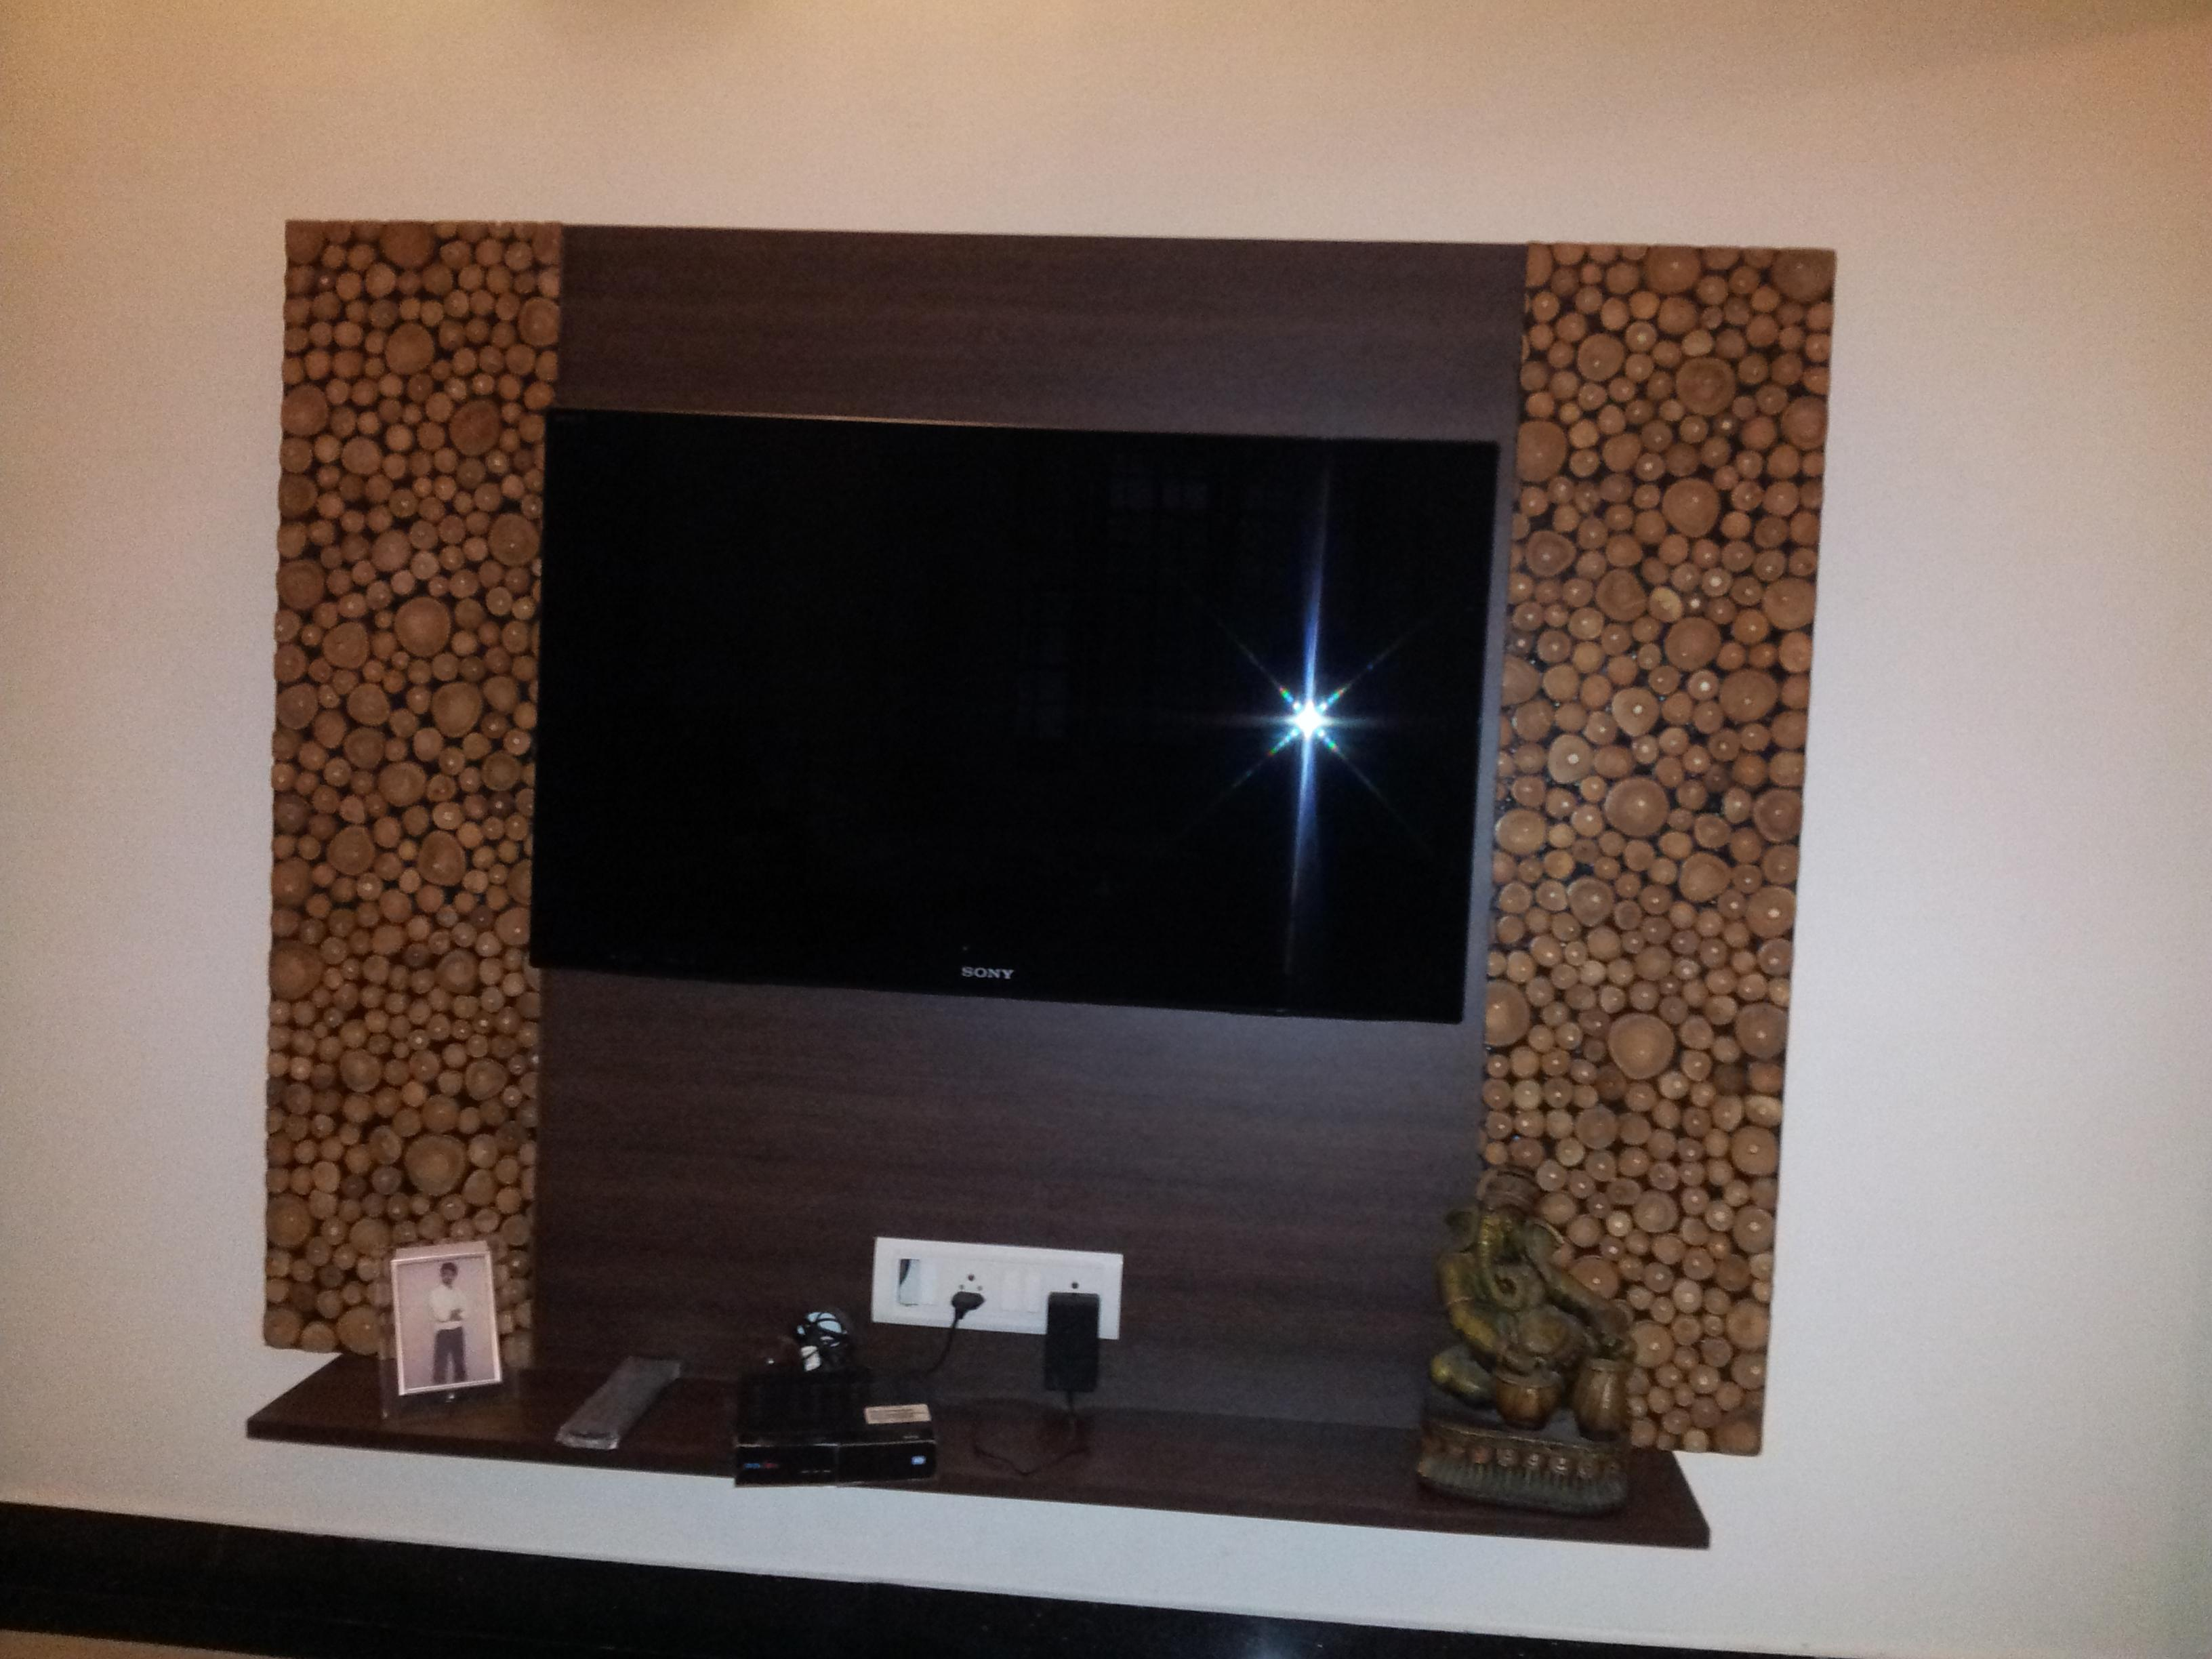 Laminated Design Led Tv Wall Hyd : LED TV Wall Mount panel with beautiful laminate on both sides of the ...